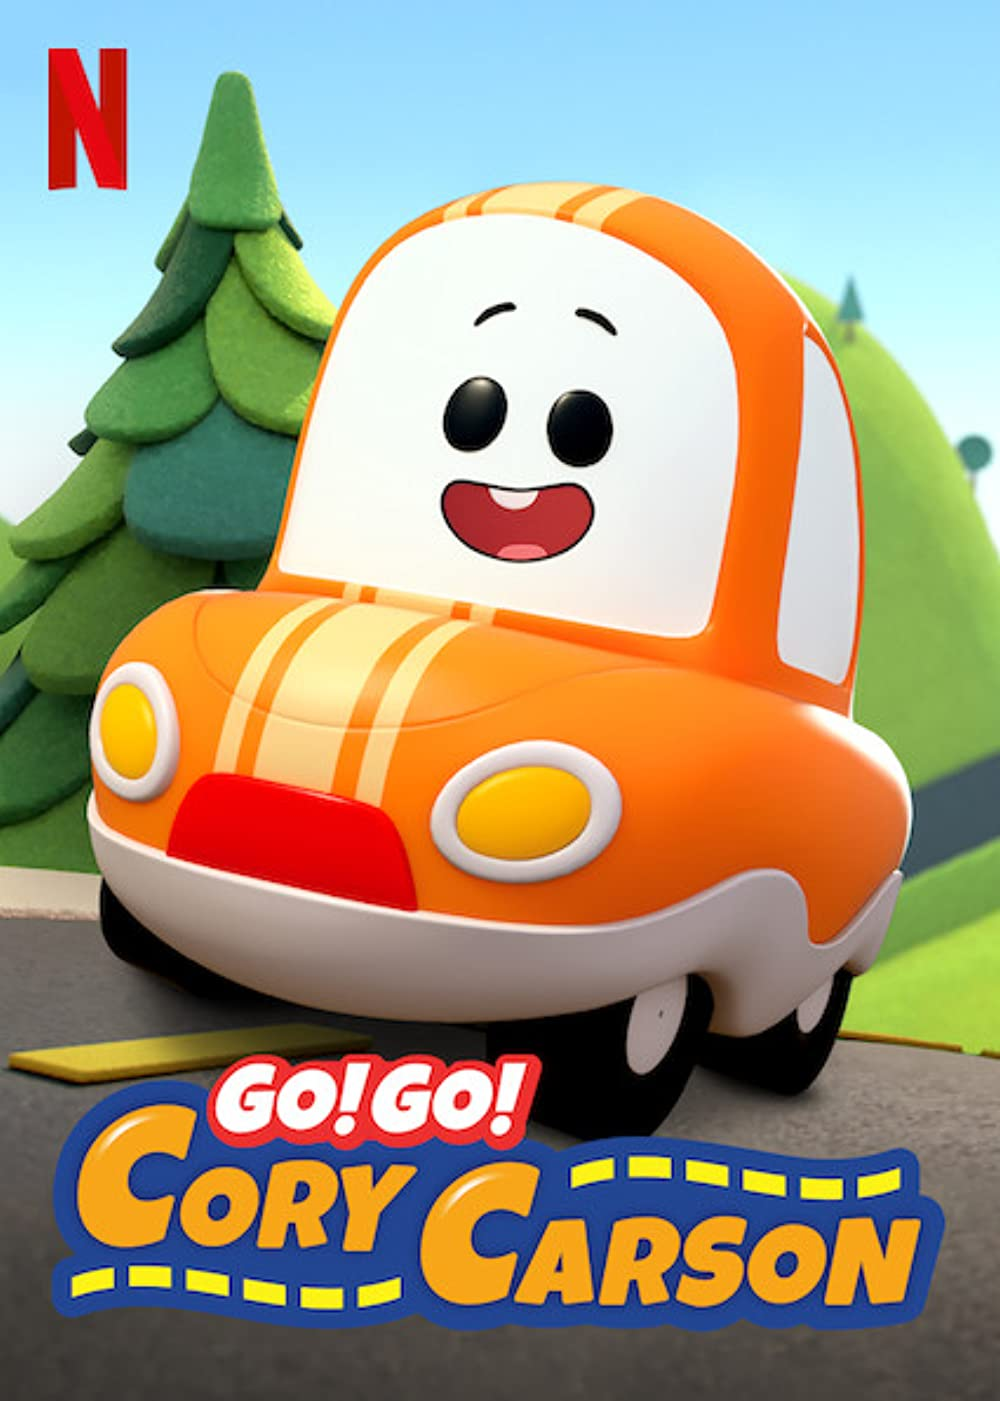 Go! Go! Cory Carson (2021) S06 480p HDRip Complete Hindi Dubbed NF Series [600MB]